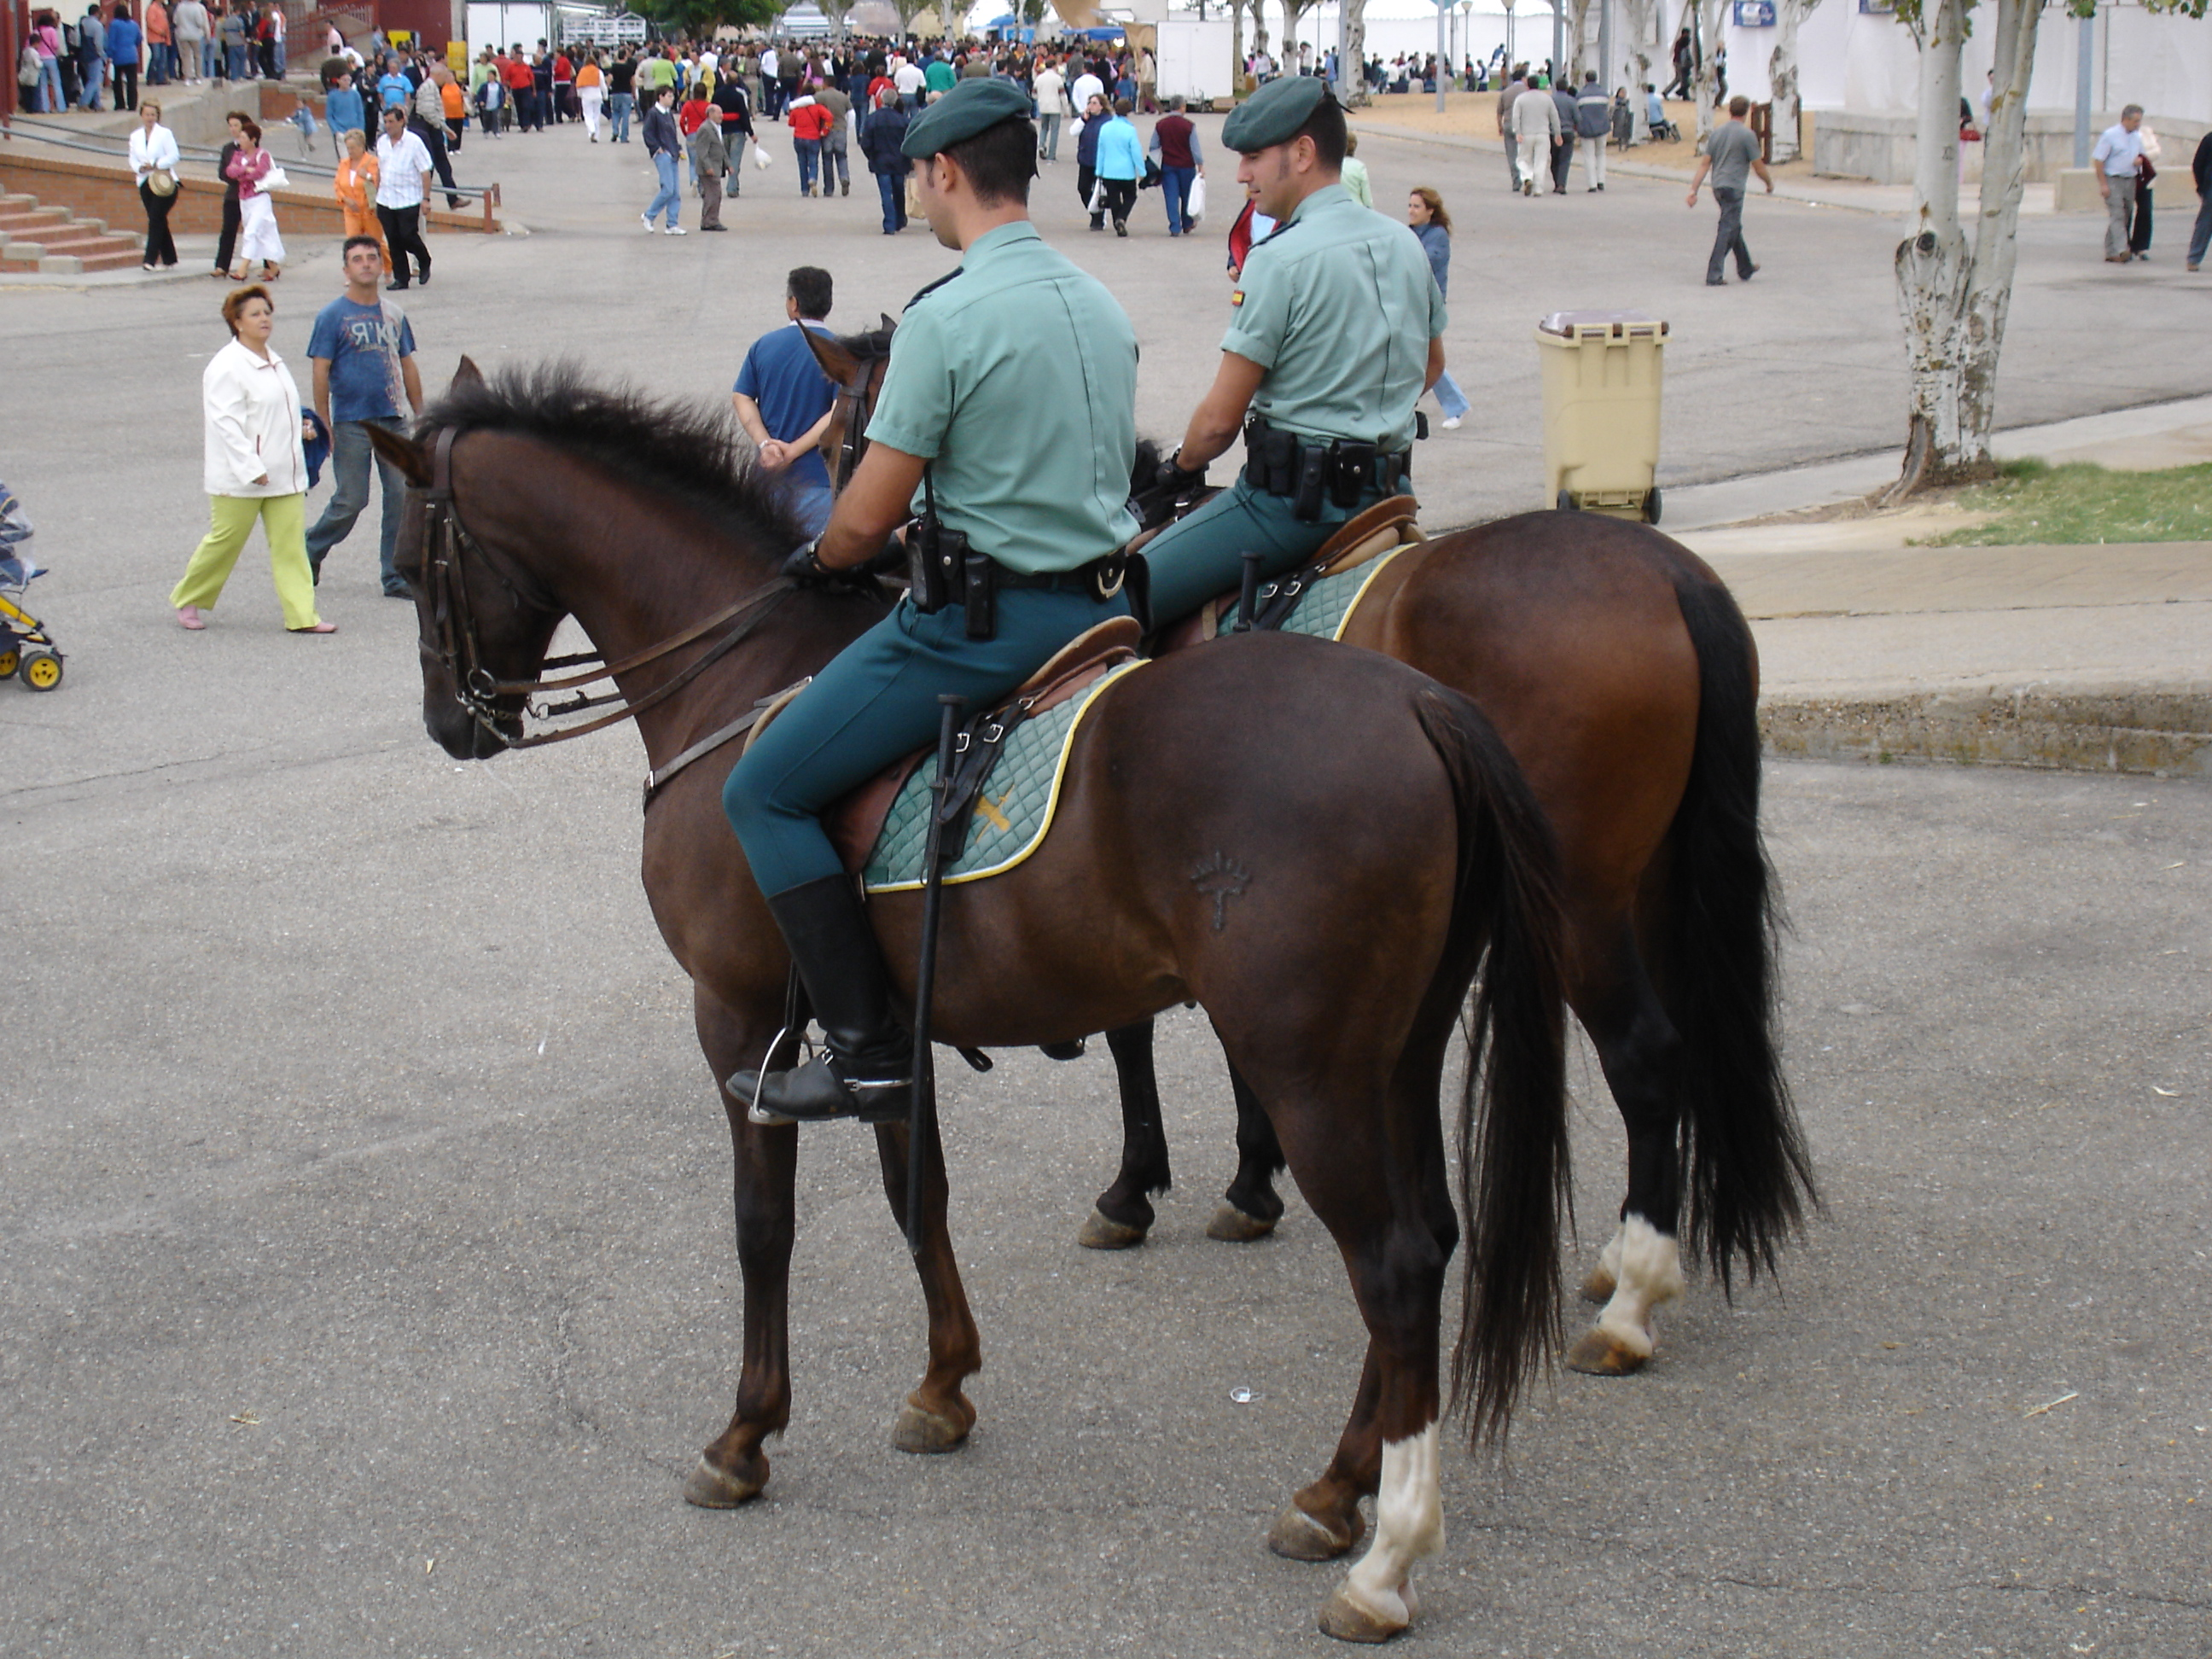 http://upload.wikimedia.org/wikipedia/commons/3/3d/Guardia_Civil_a_caballo.jpg